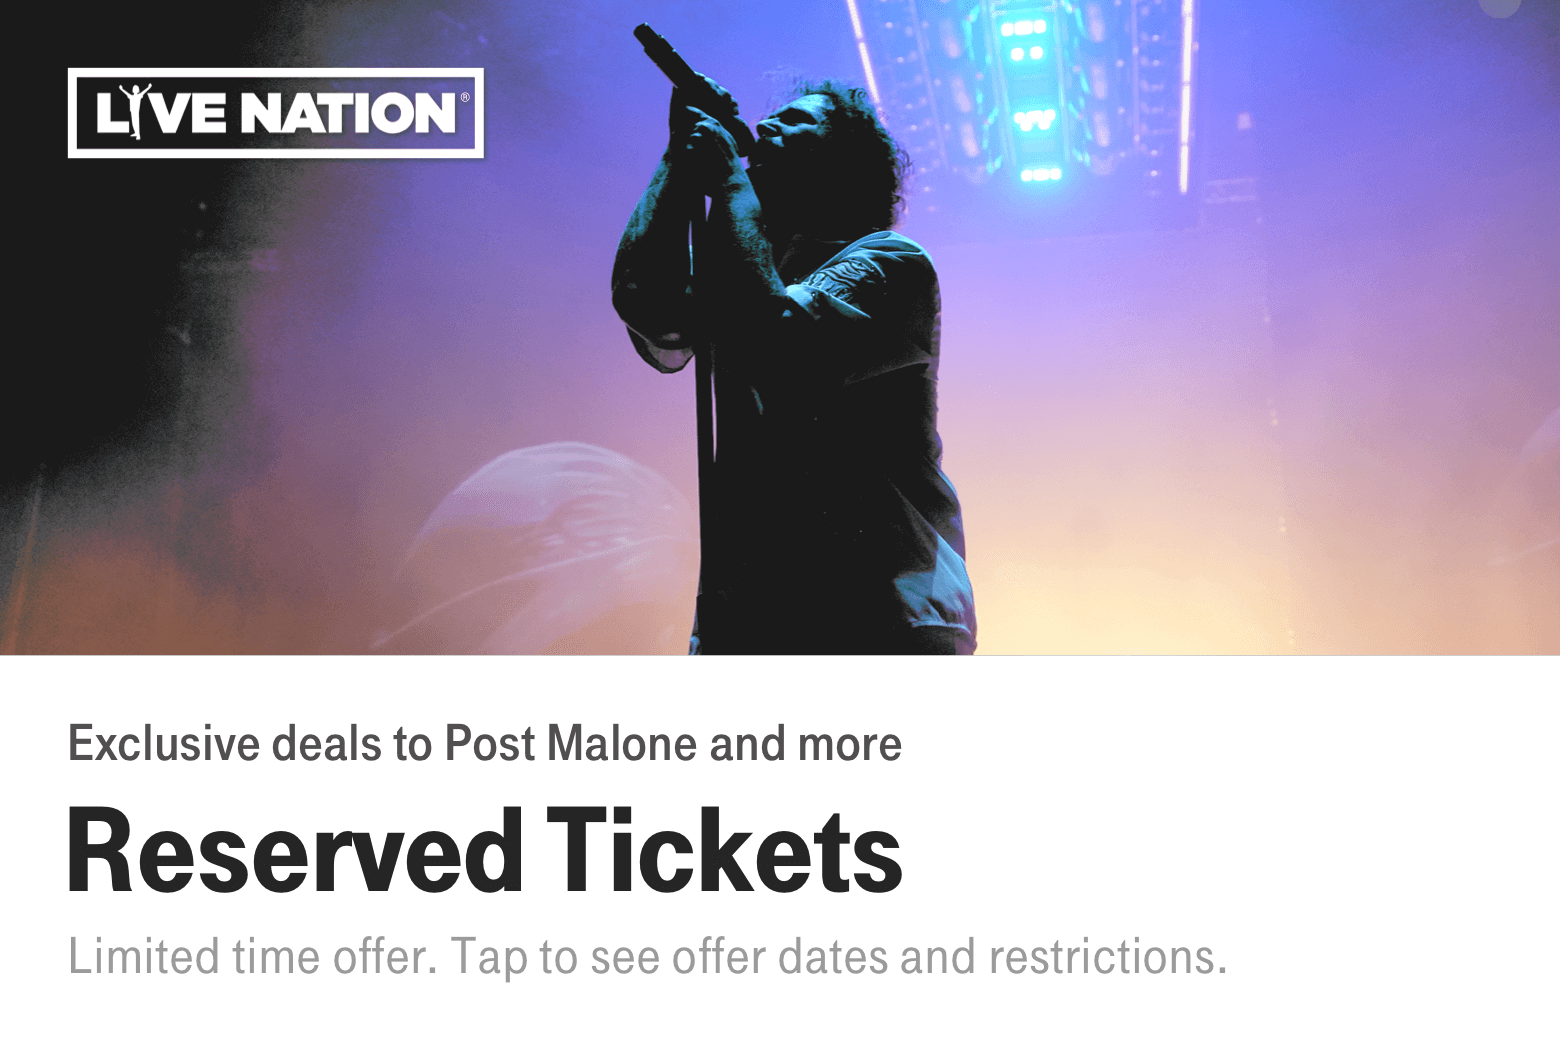 Live Nation. Reserved Tickets. Exclusive deals to Post Malone and more. Limited time offer. Tap to see offer dates and restrictions.